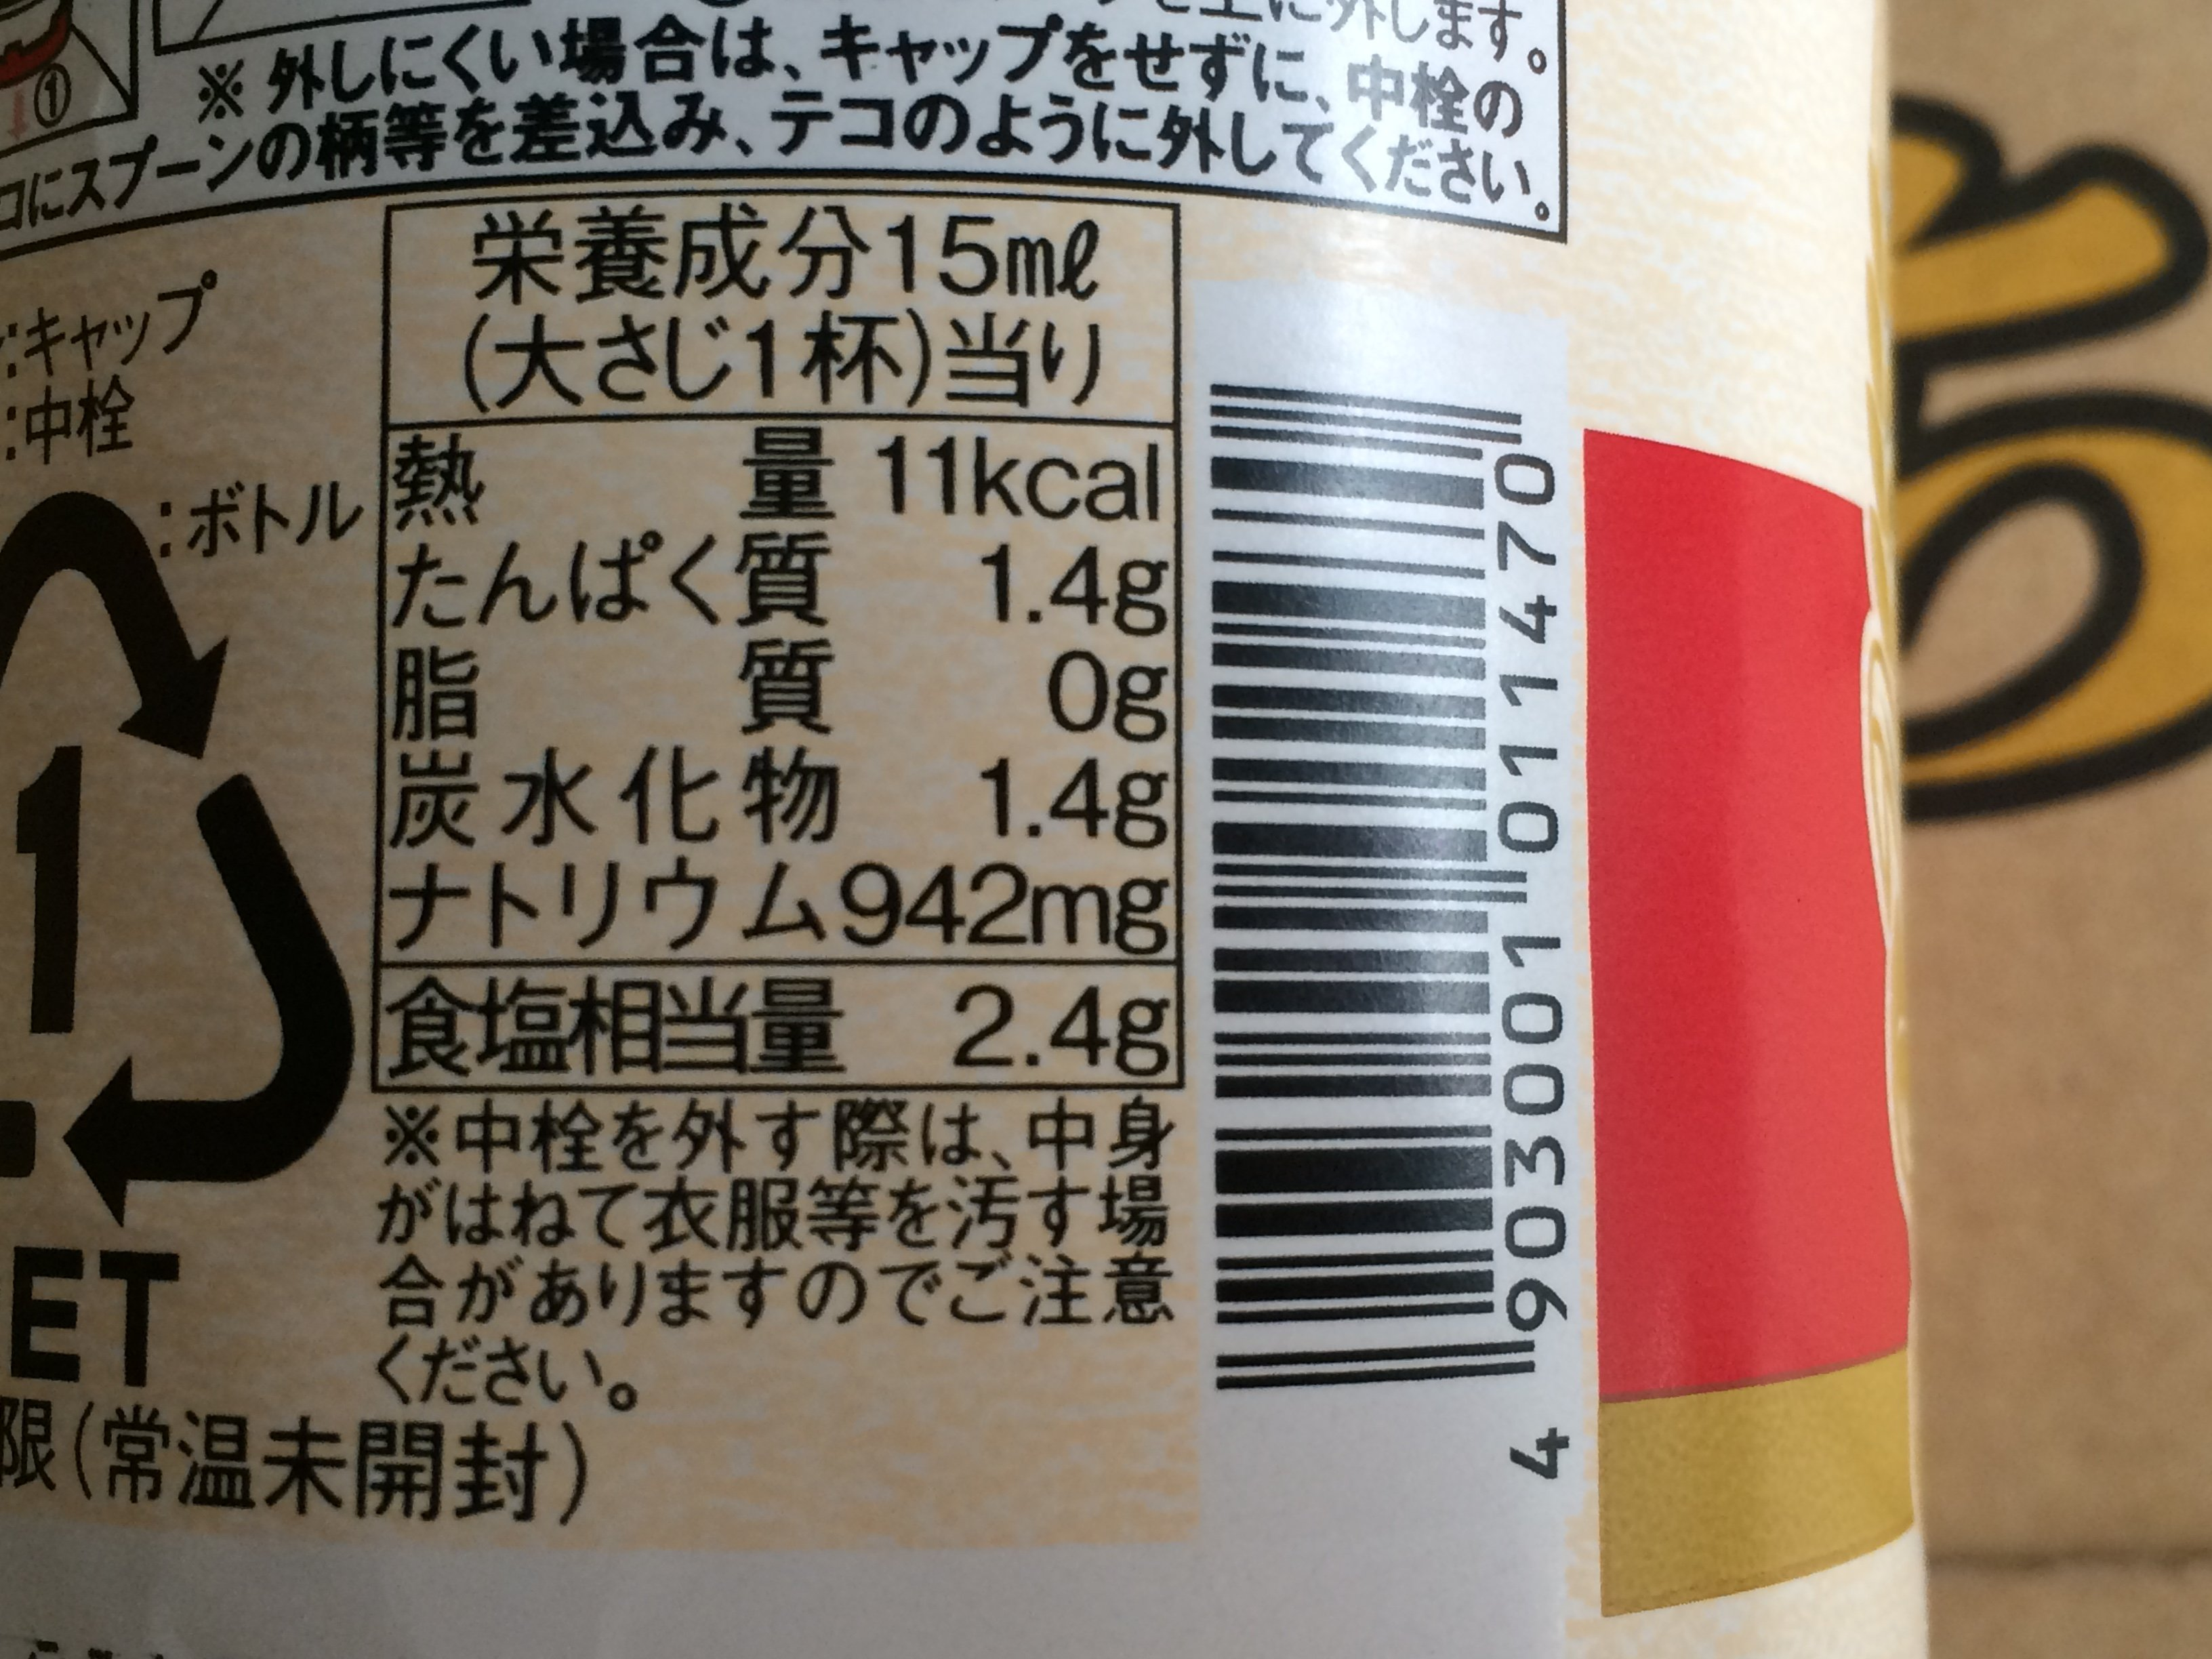 soy sauce that is indispensable for both cooking and dining i spend quite a lot of it 20150622 074352209 iOS - 料理にも食卓にも欠かせない醤油。結構使うけどどれくらいが致死量なの?